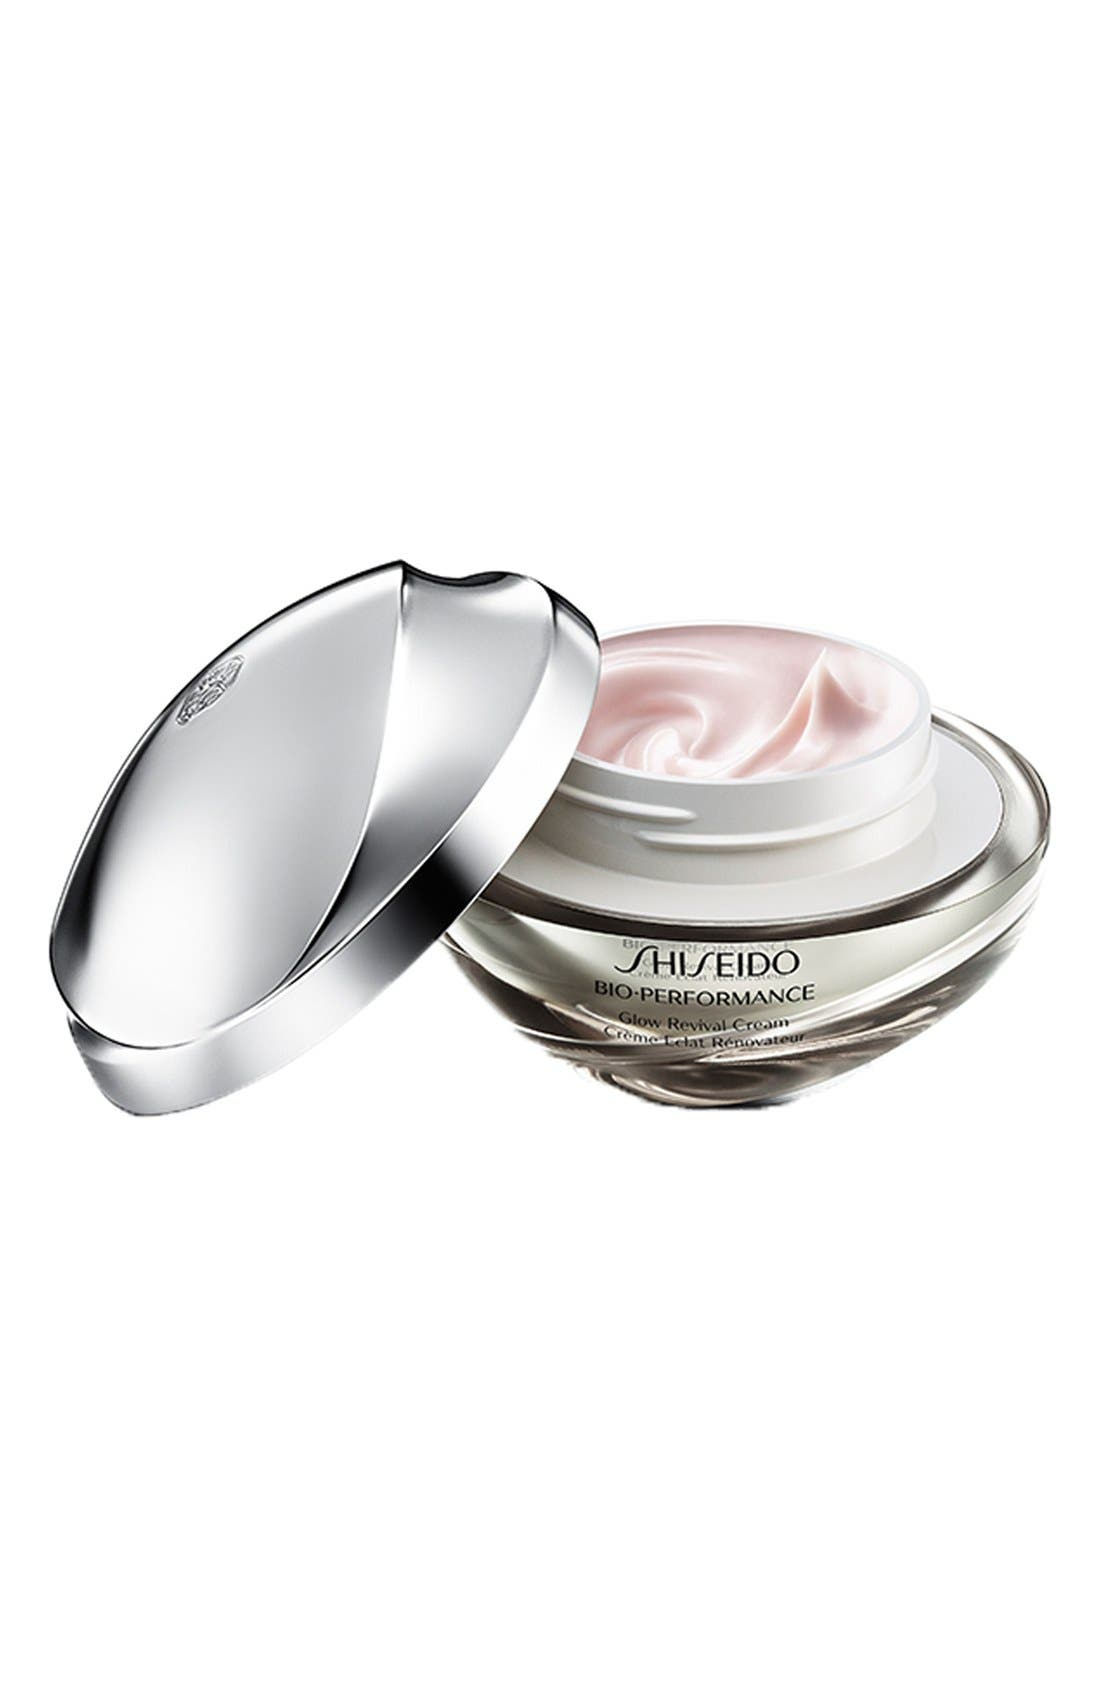 'Bio-Performance' Glow Revival Cream,                             Main thumbnail 1, color,                             NO COLOR